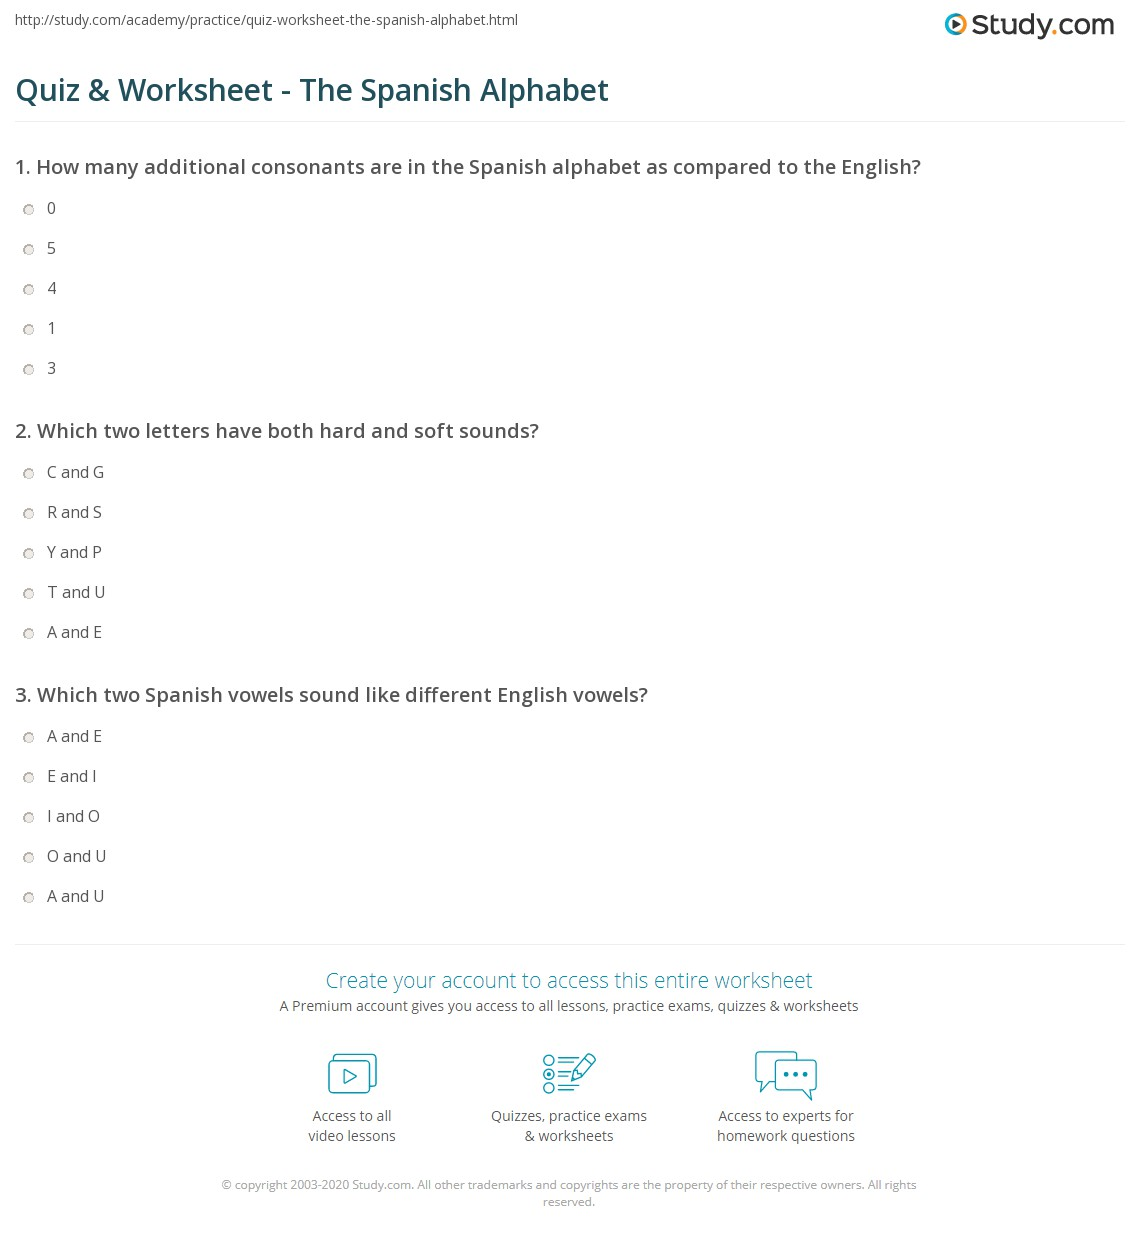 photograph relating to Spanish Alphabet Printable identify Quiz Worksheet - The Spanish Alphabet